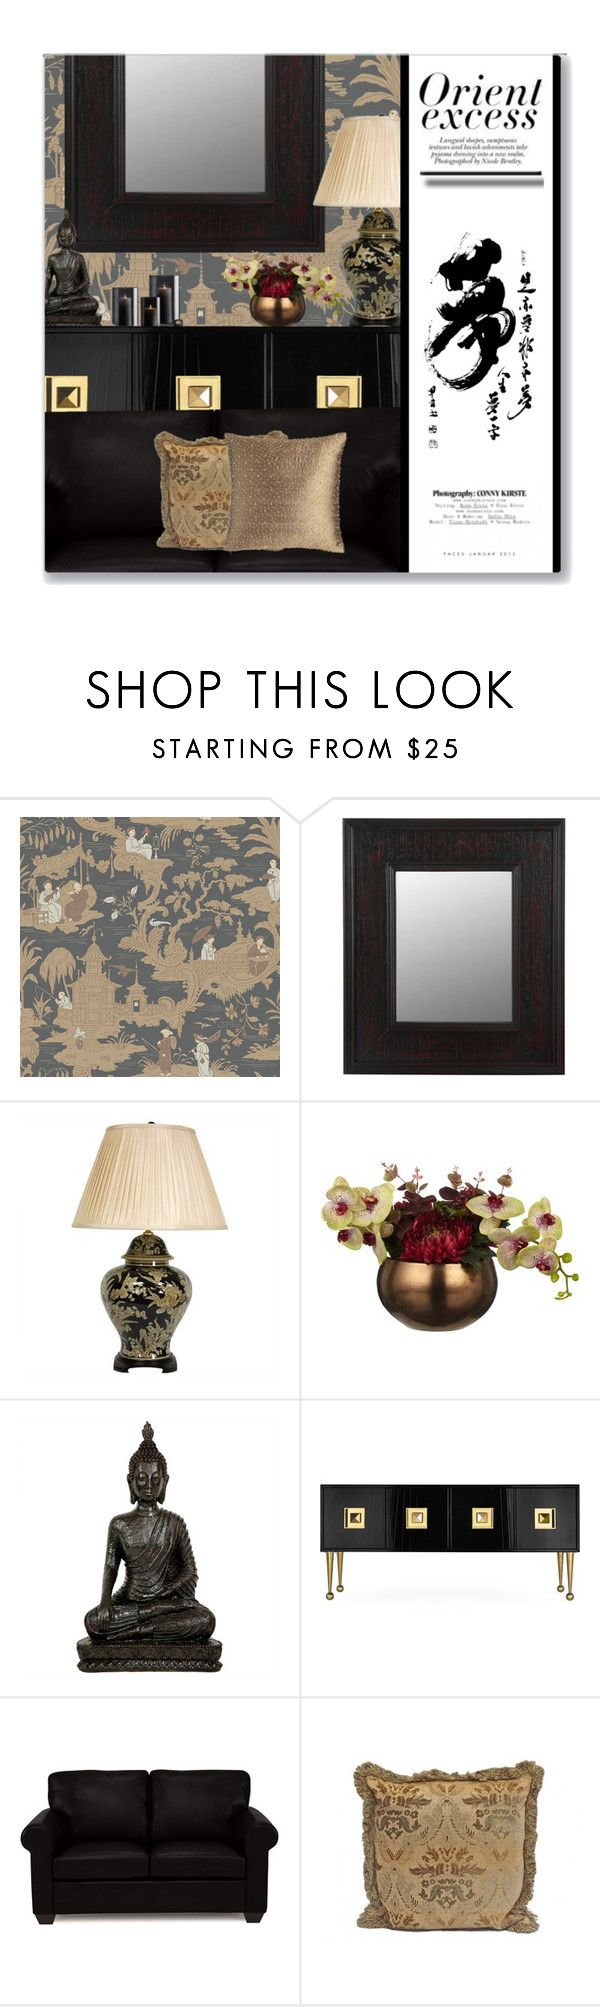 """Orient Excess"" by leanne-mcclean ❤ liked on Polyvore featuring interior, interiors, interior design, home, home decor, interior decorating, Cole & Son, Jonathan Adler, Austin Horn and Nicole"